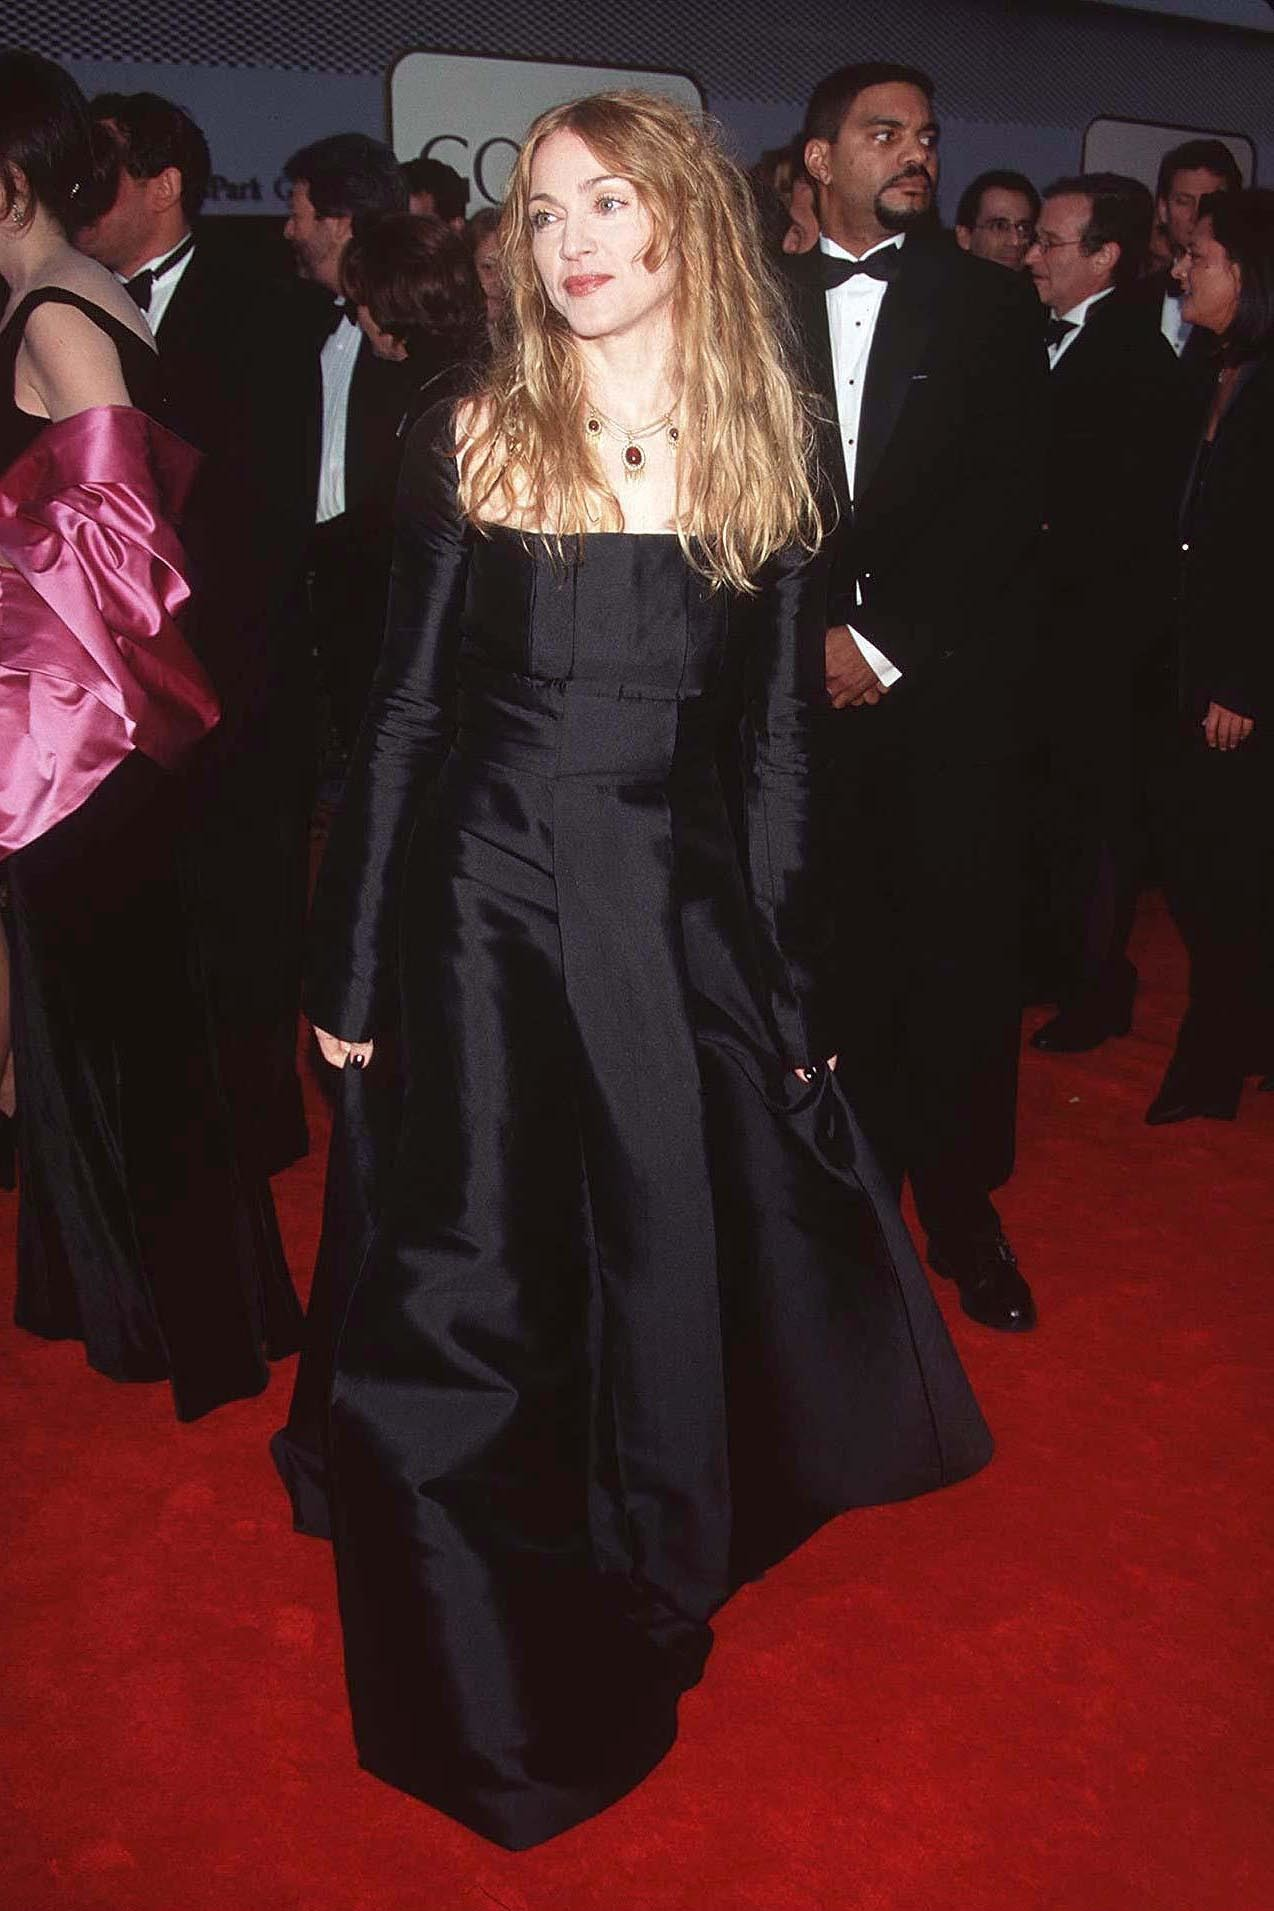 Madonna attends the 55th annual Golden Globes awards in Beverly Hills on Jan. 18, 1998.